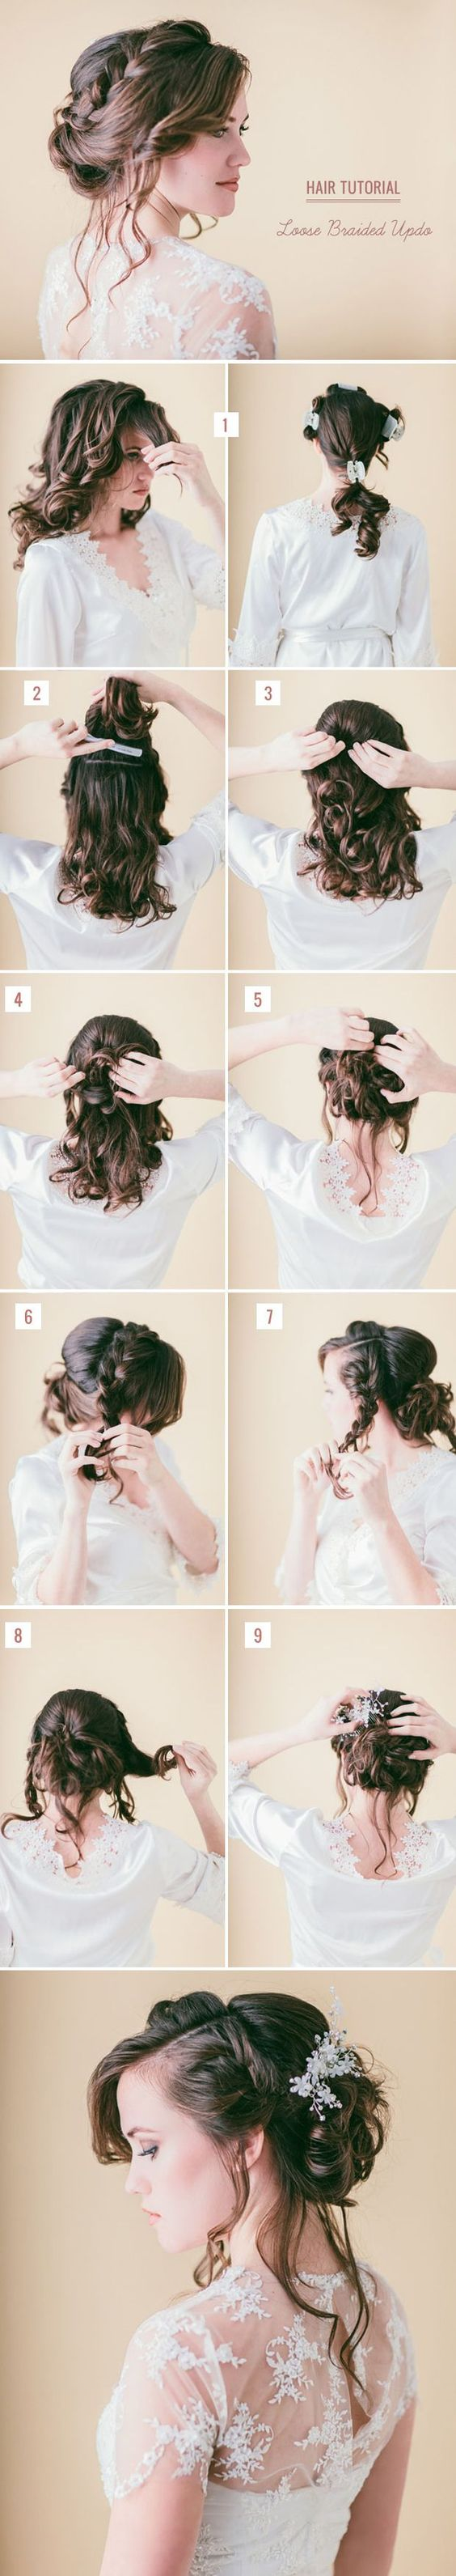 10 Best DIY Wedding Hairstyles with Tutorials - http://1pic4u.com/2015/09/09/10-best-diy-wedding-hairstyles-with-tutorials/